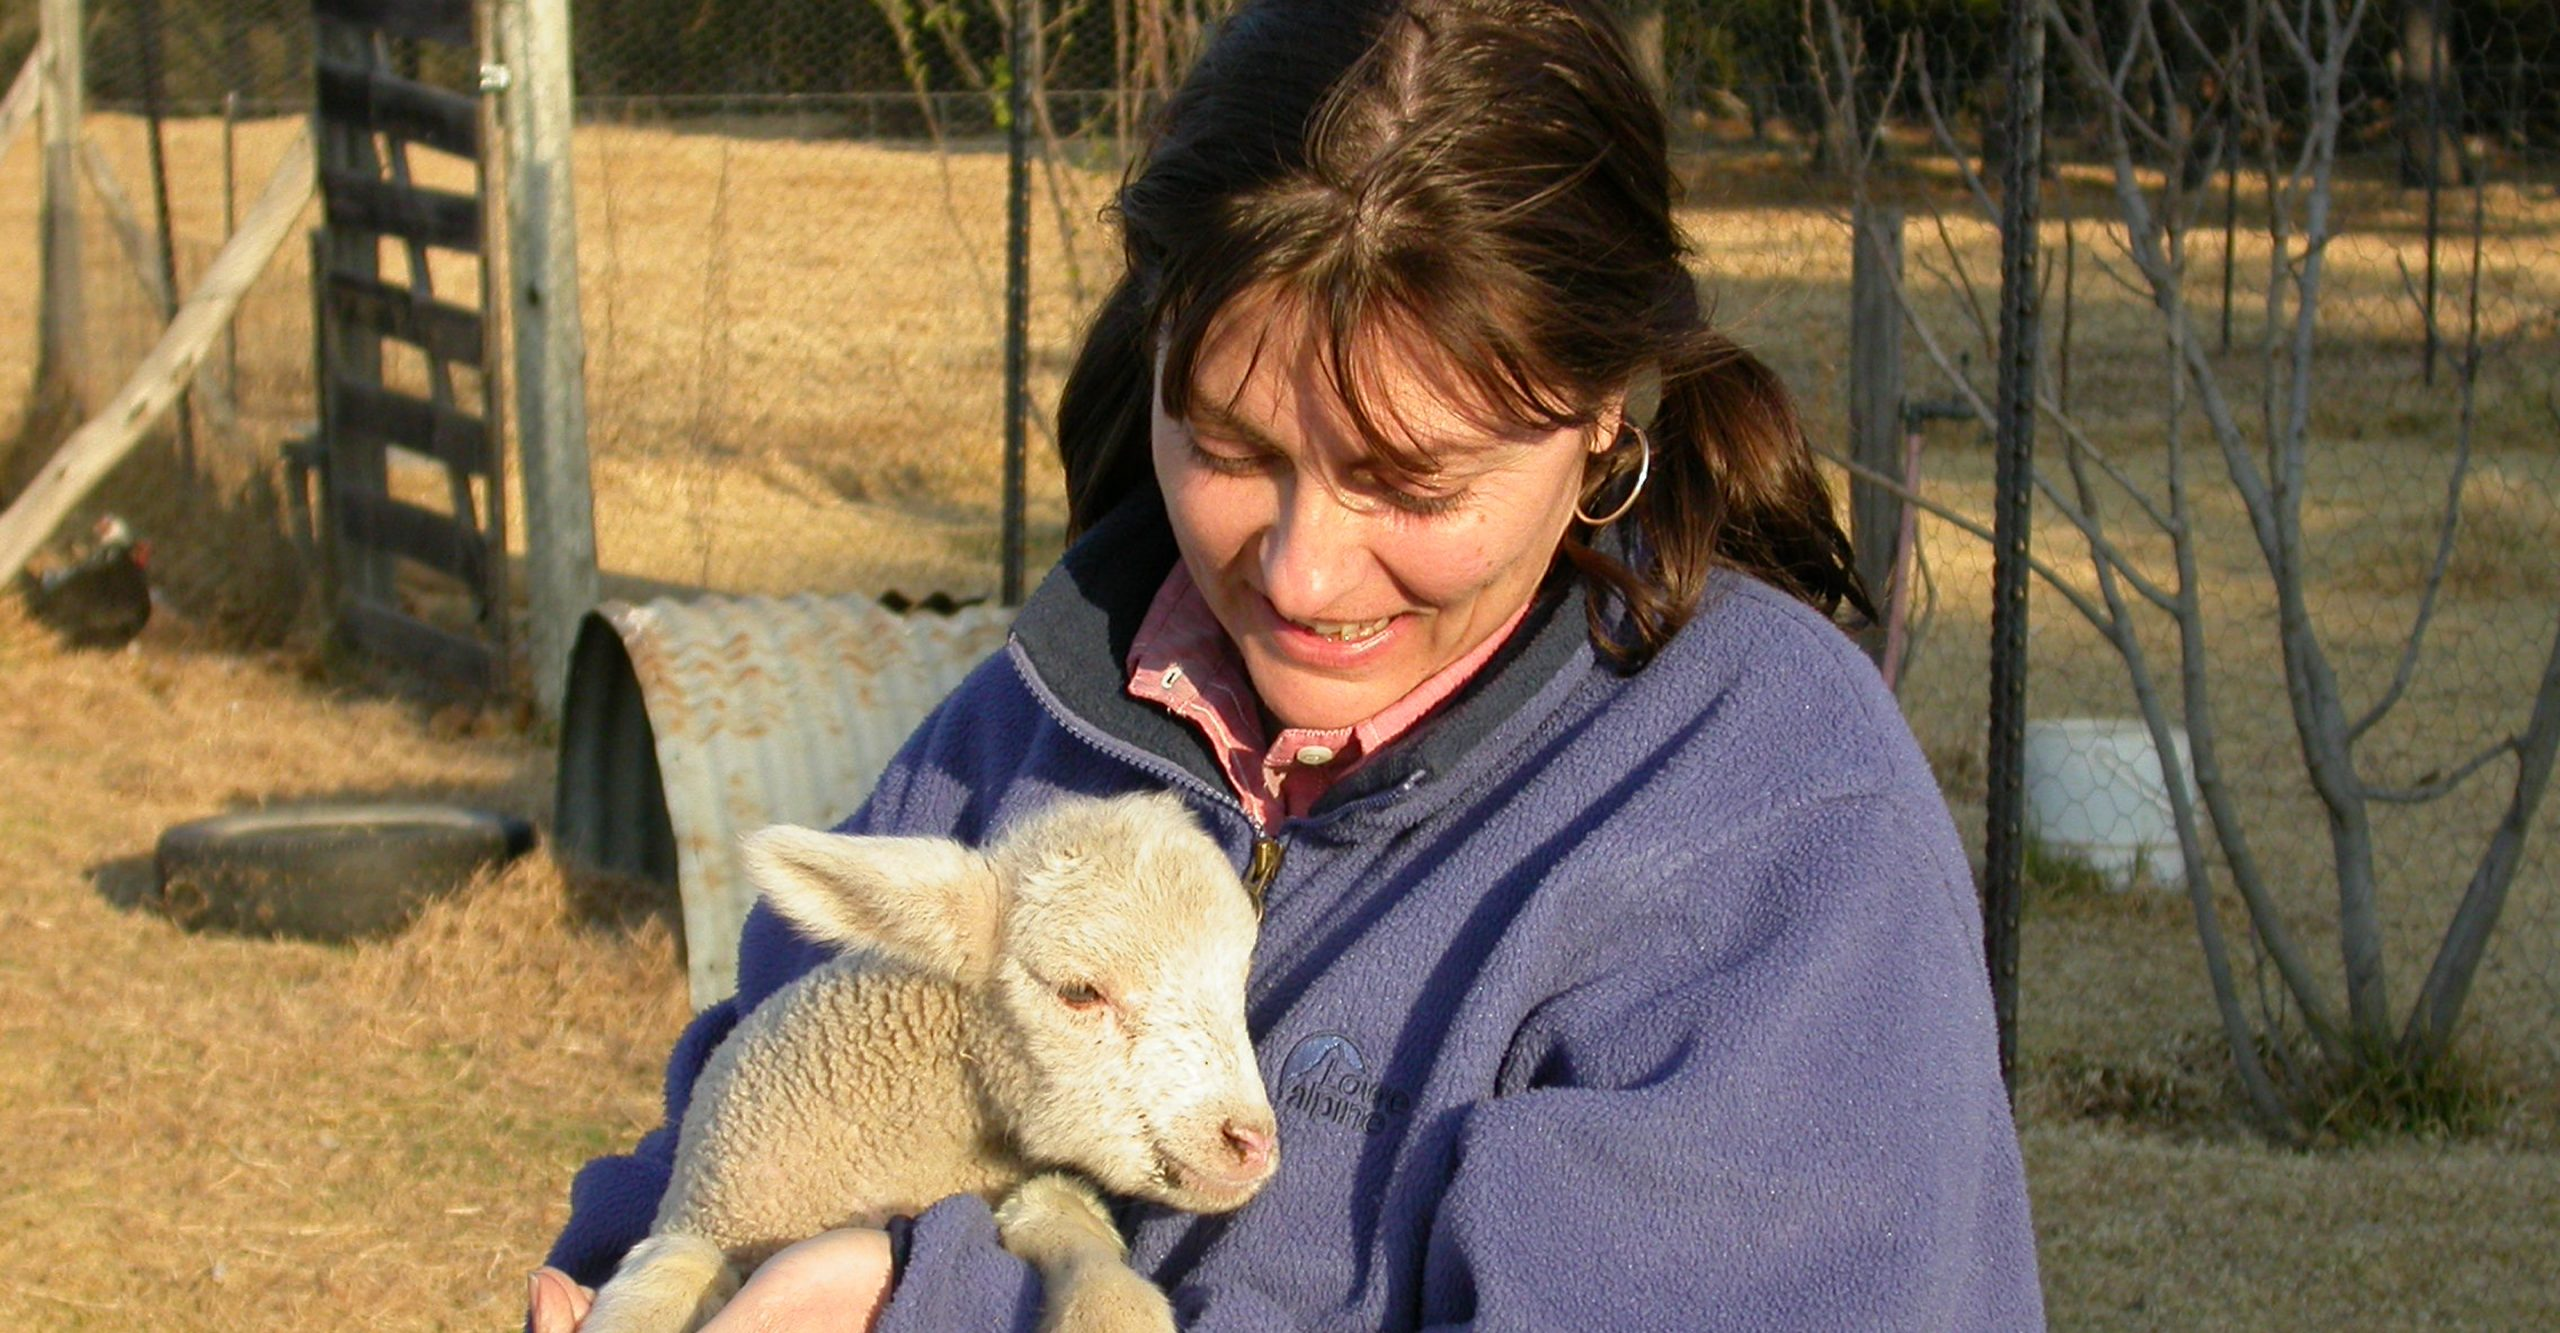 Interact with the farm animals